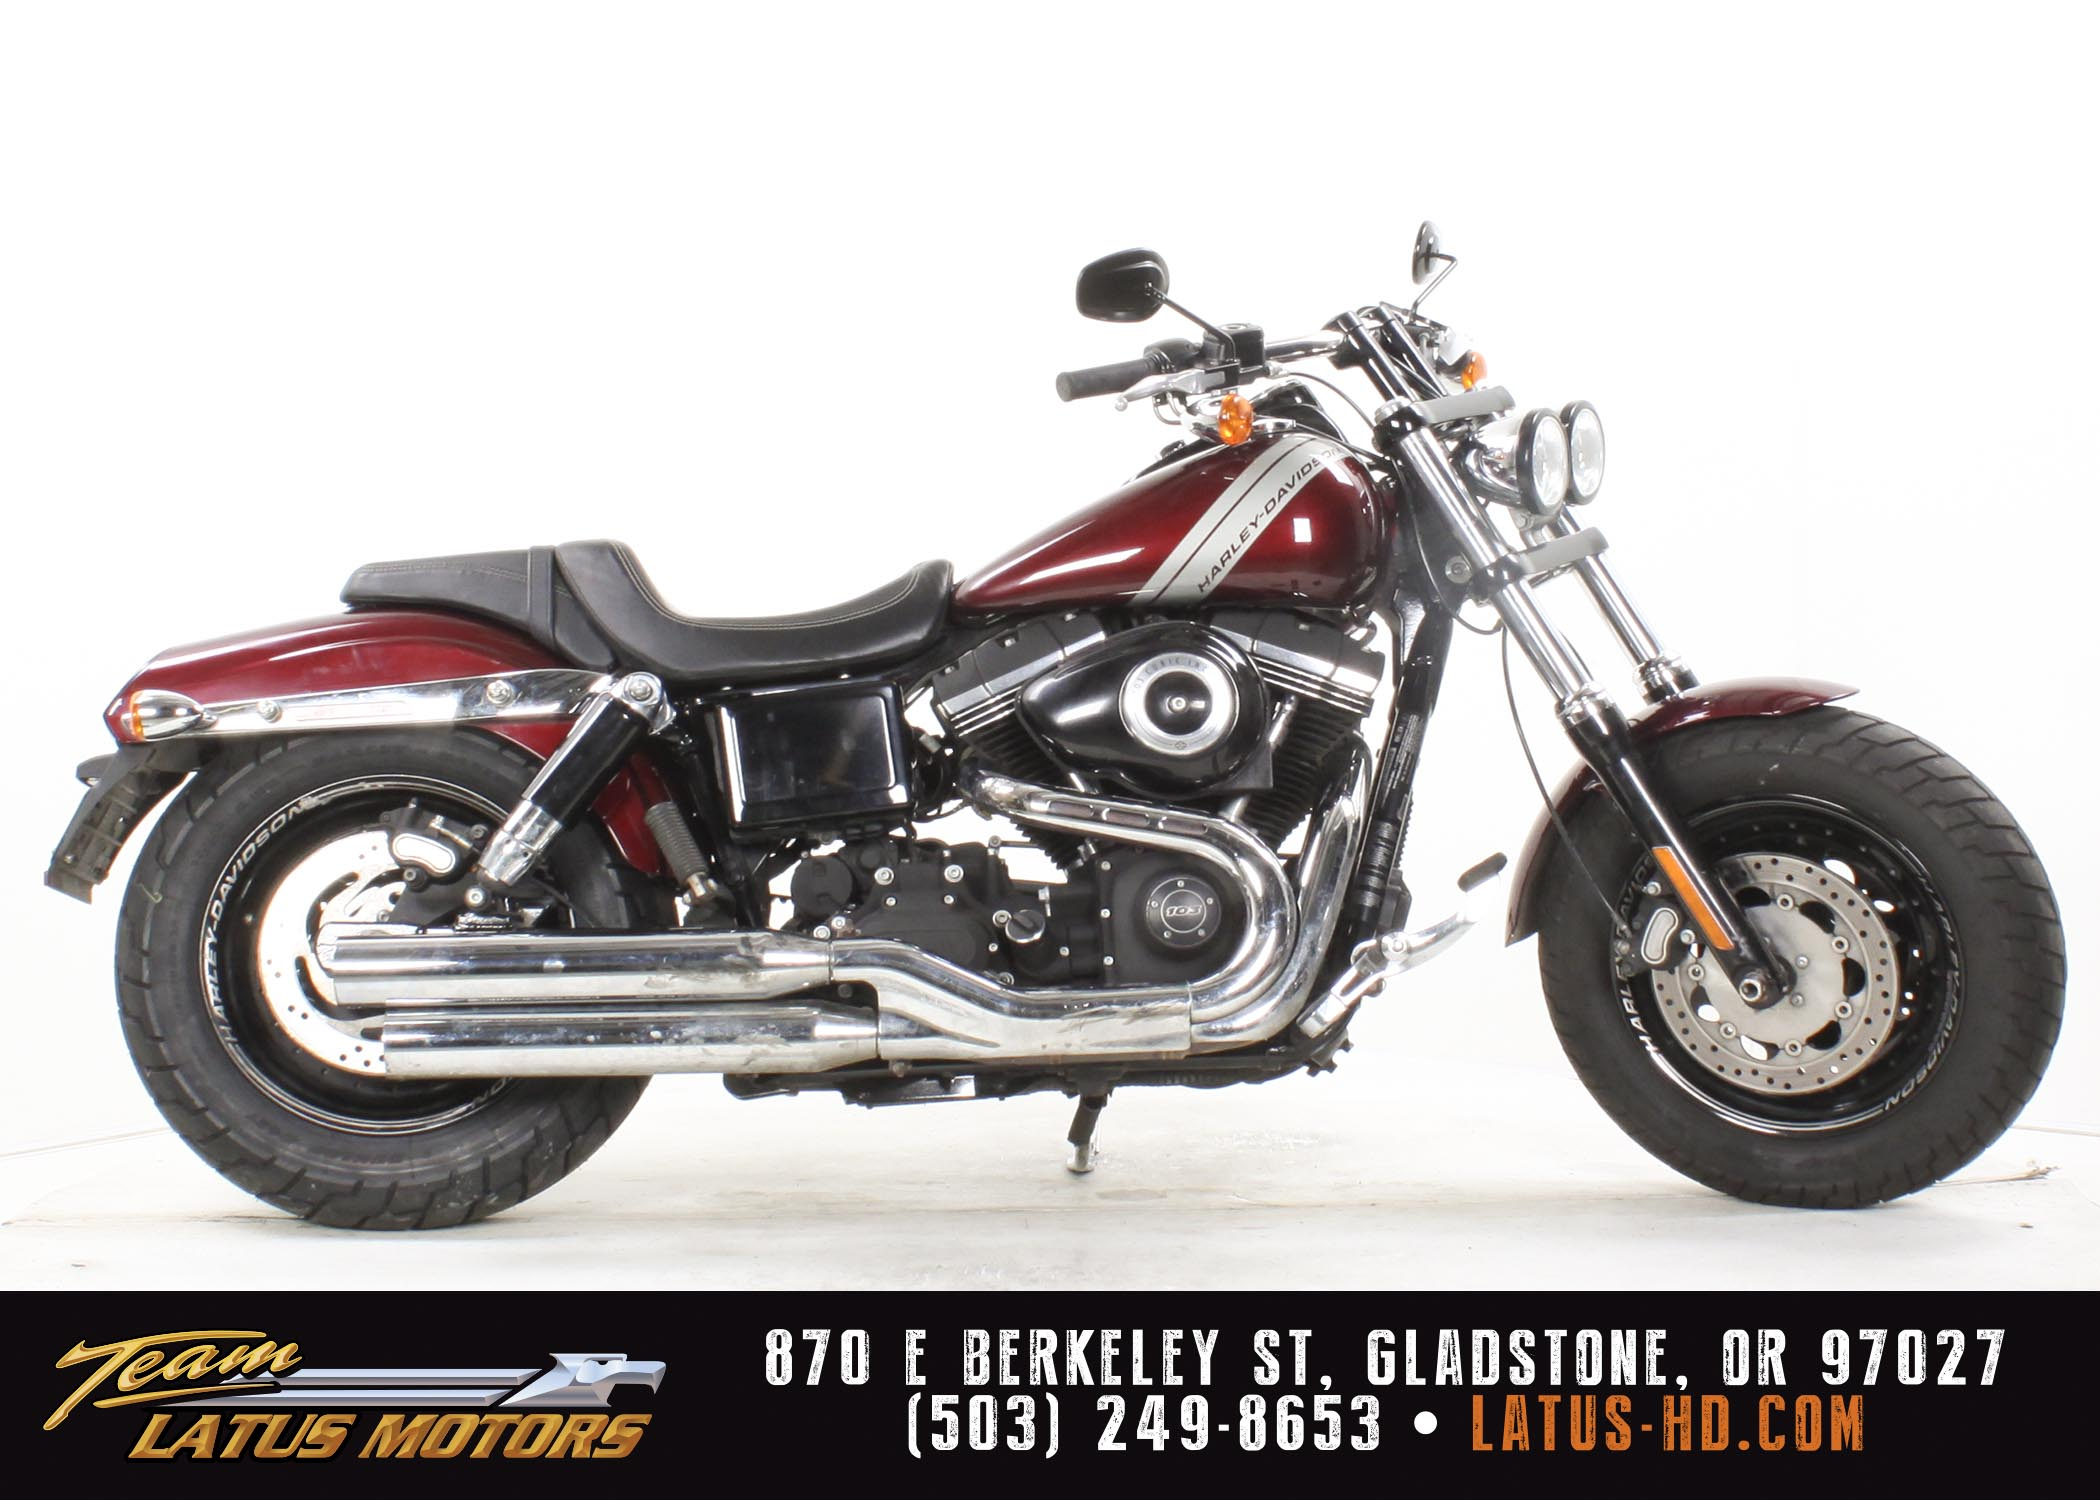 Used 2015 HARLEY FXDF in Gladstone, OR